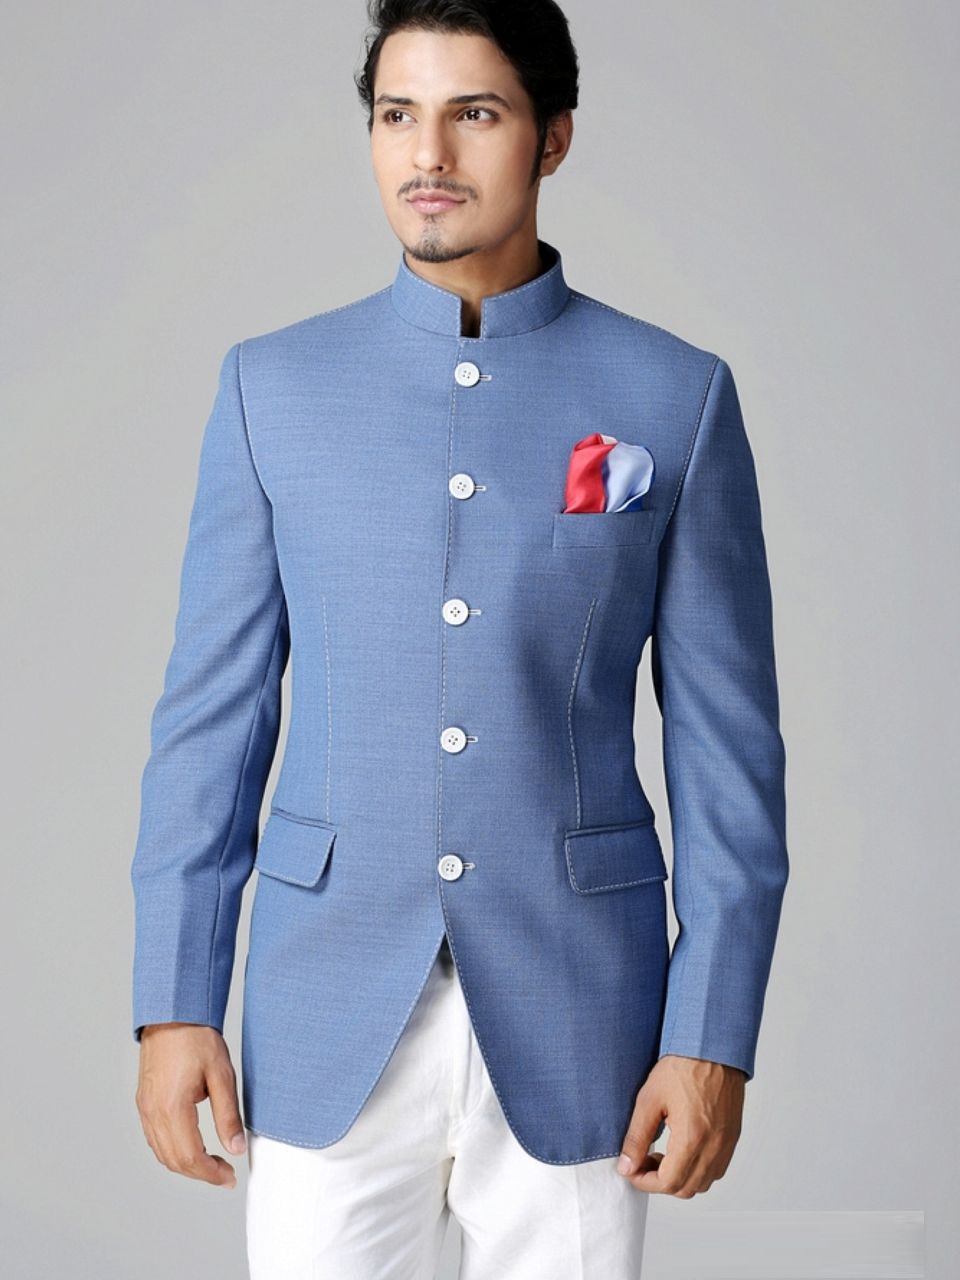 Stylish suit jackets that will make you look and feel fantastic ...